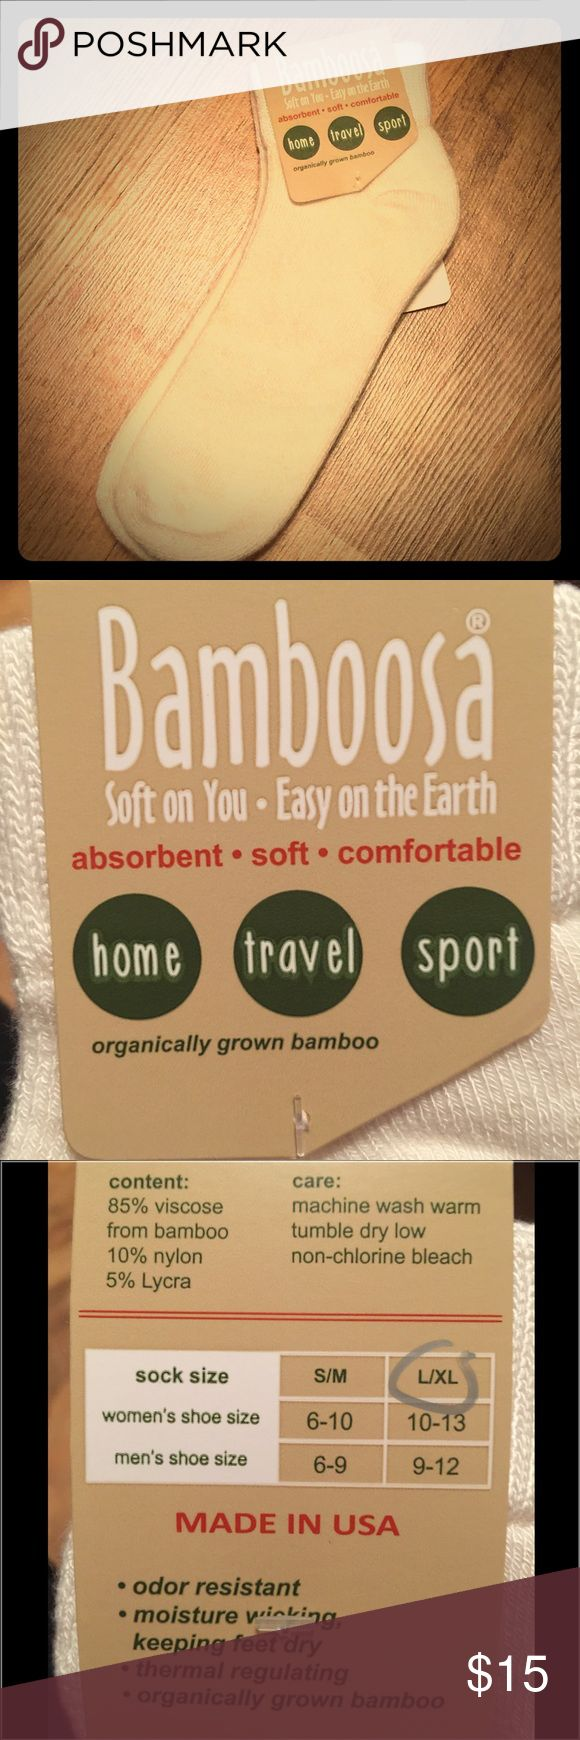 ✨Pure Natural Bamboo Socks✨ World's Best Deluxe Softest Socks! Try these Bamboosa socks for working out, running or just to keep your feet warm. Soft, absorbent, breathable, comfortable socks to keep your feet happy! Odor resistant, Wicks & evaporates sweat & doesn't stick to skin, Excellent permeability, keeps your feet comfortable & dry, Breathable & cool in hot weather, Thermal regulating, keep your feet significantly warmer in cold weather, Highly absorbent, causing feet to stay fresher…